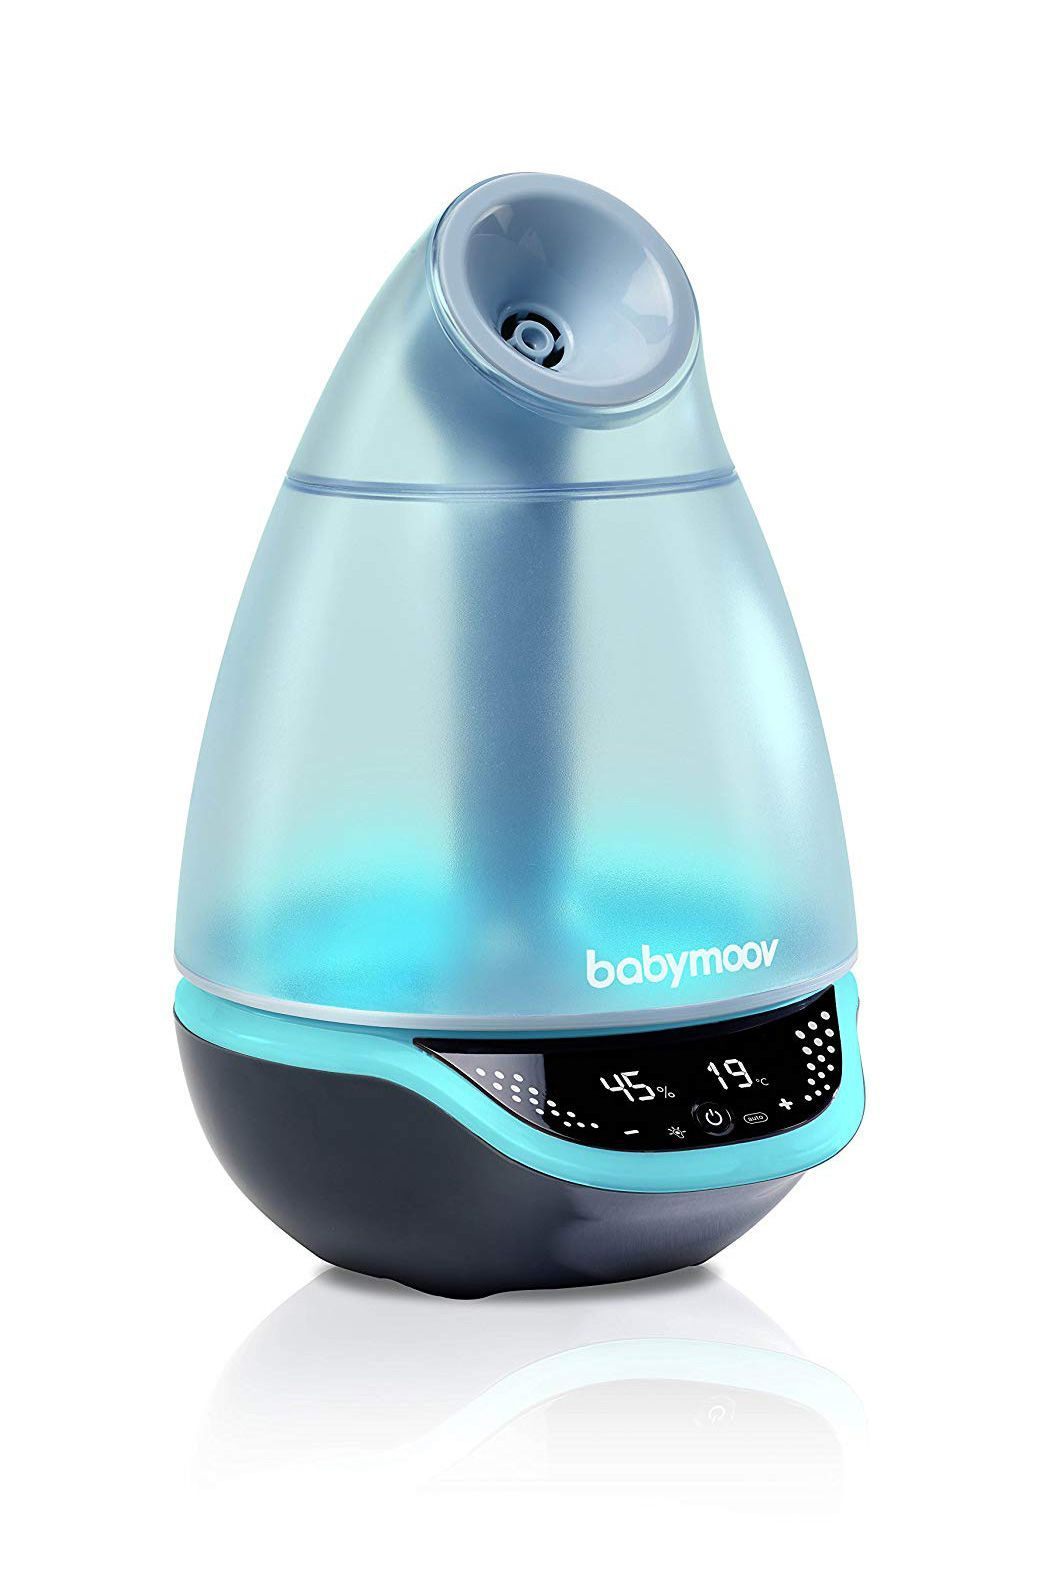 A Humidifier Babymoov Amazon $79.57 SHOP IT This humidifier adds moisture to the air when she needs it the most. The multi-colored night light has seven different colors and a 22-hour run time with a silent feature.